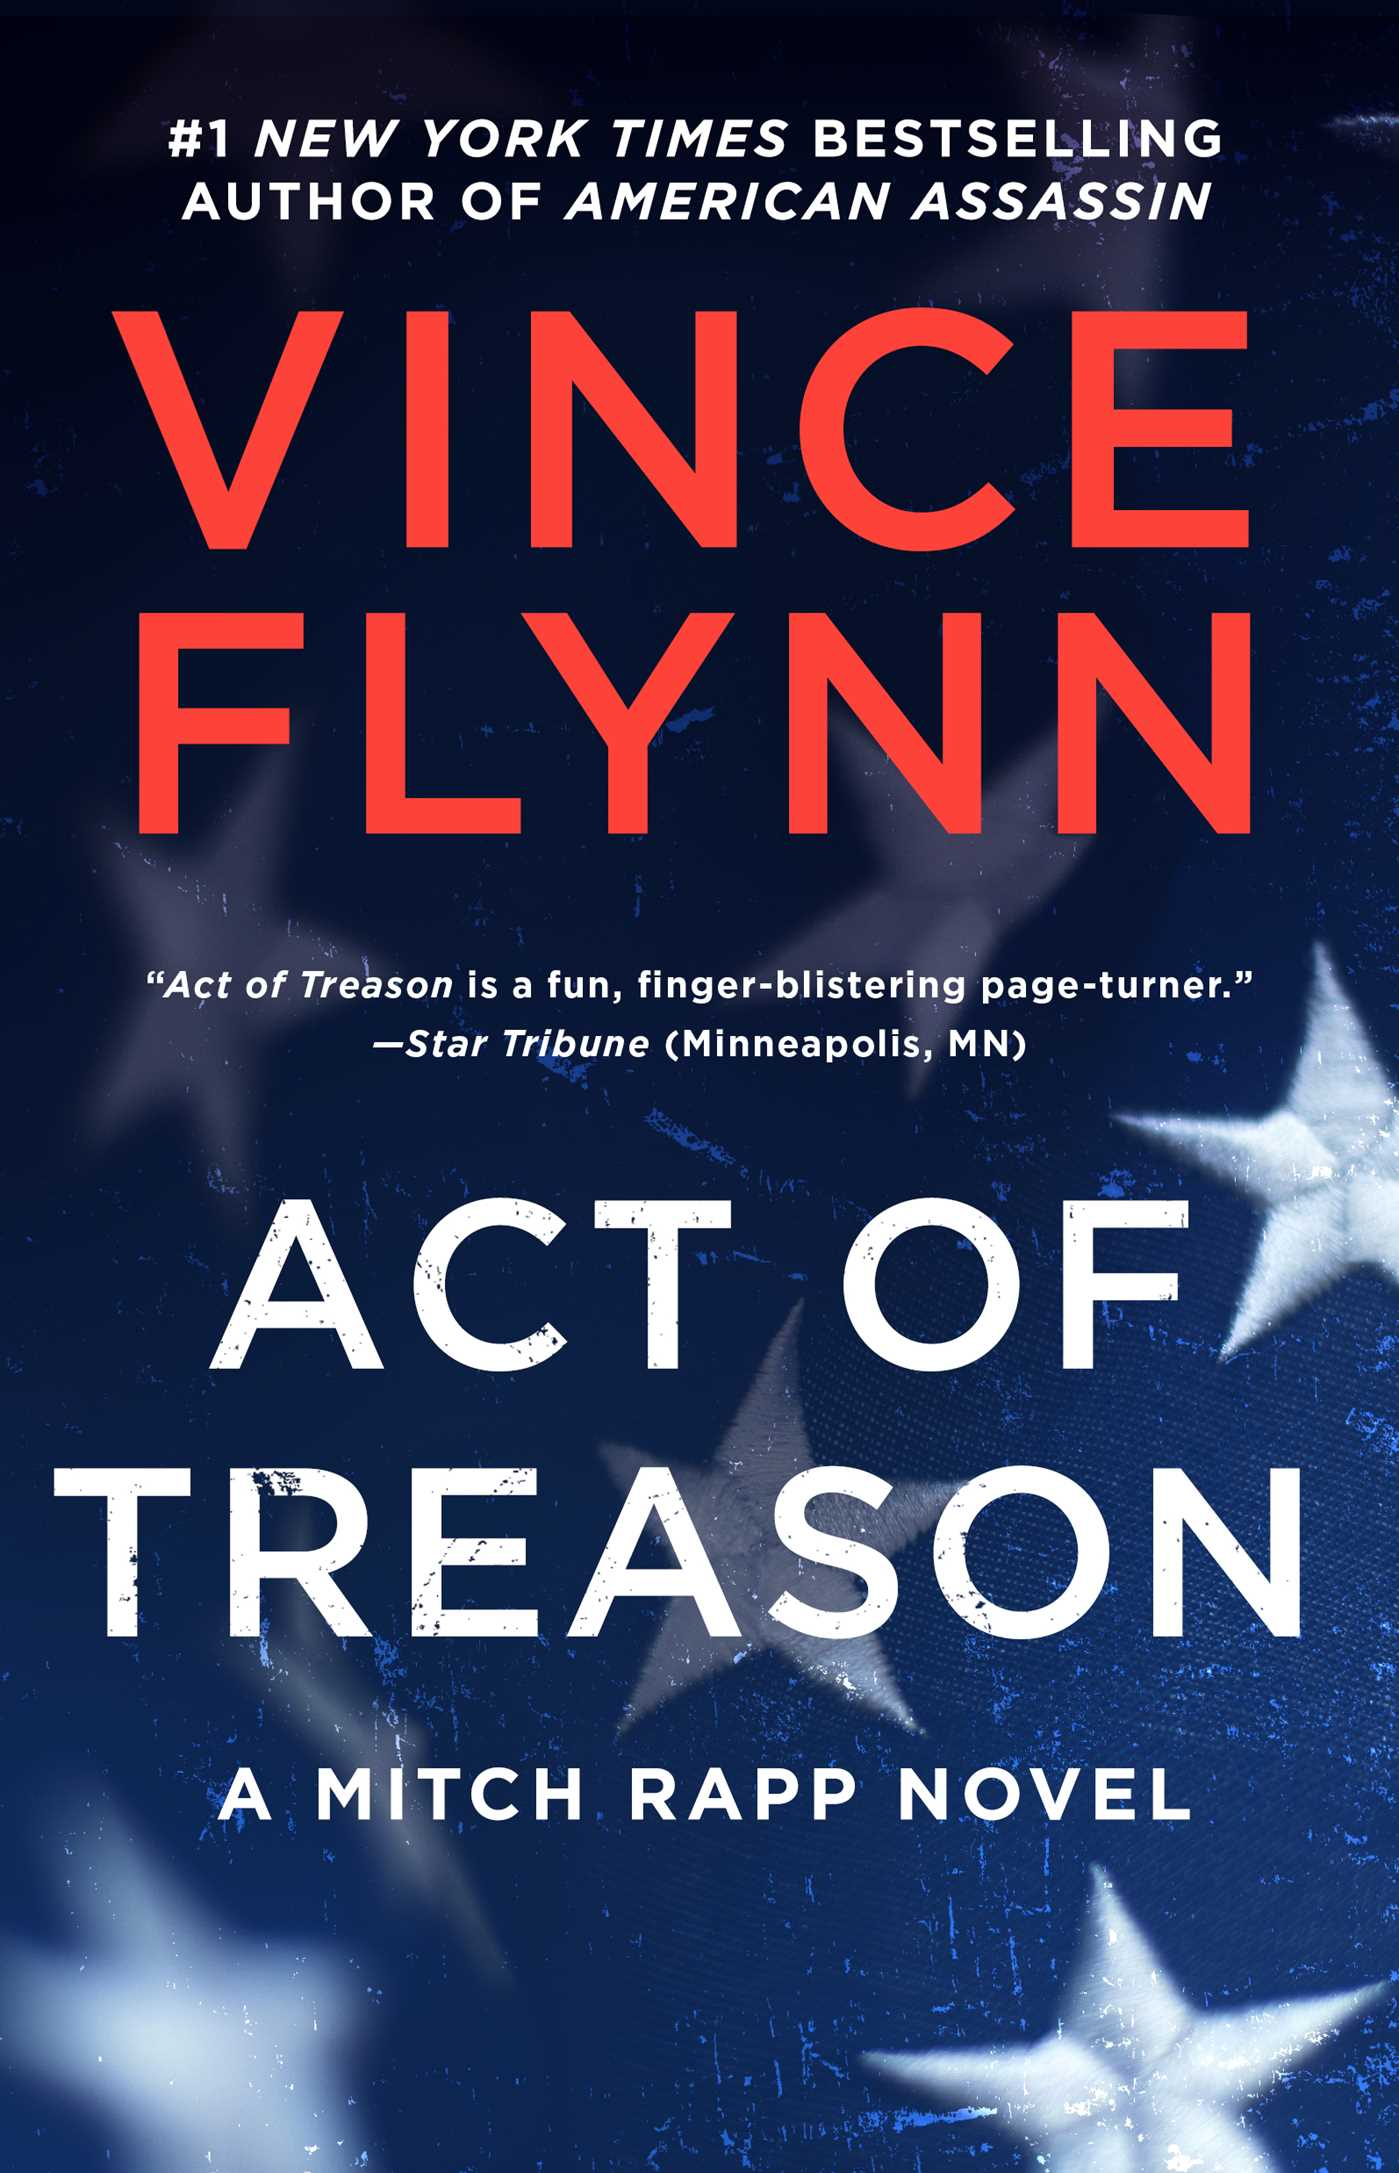 Act-of-treason-9780743298810_hr